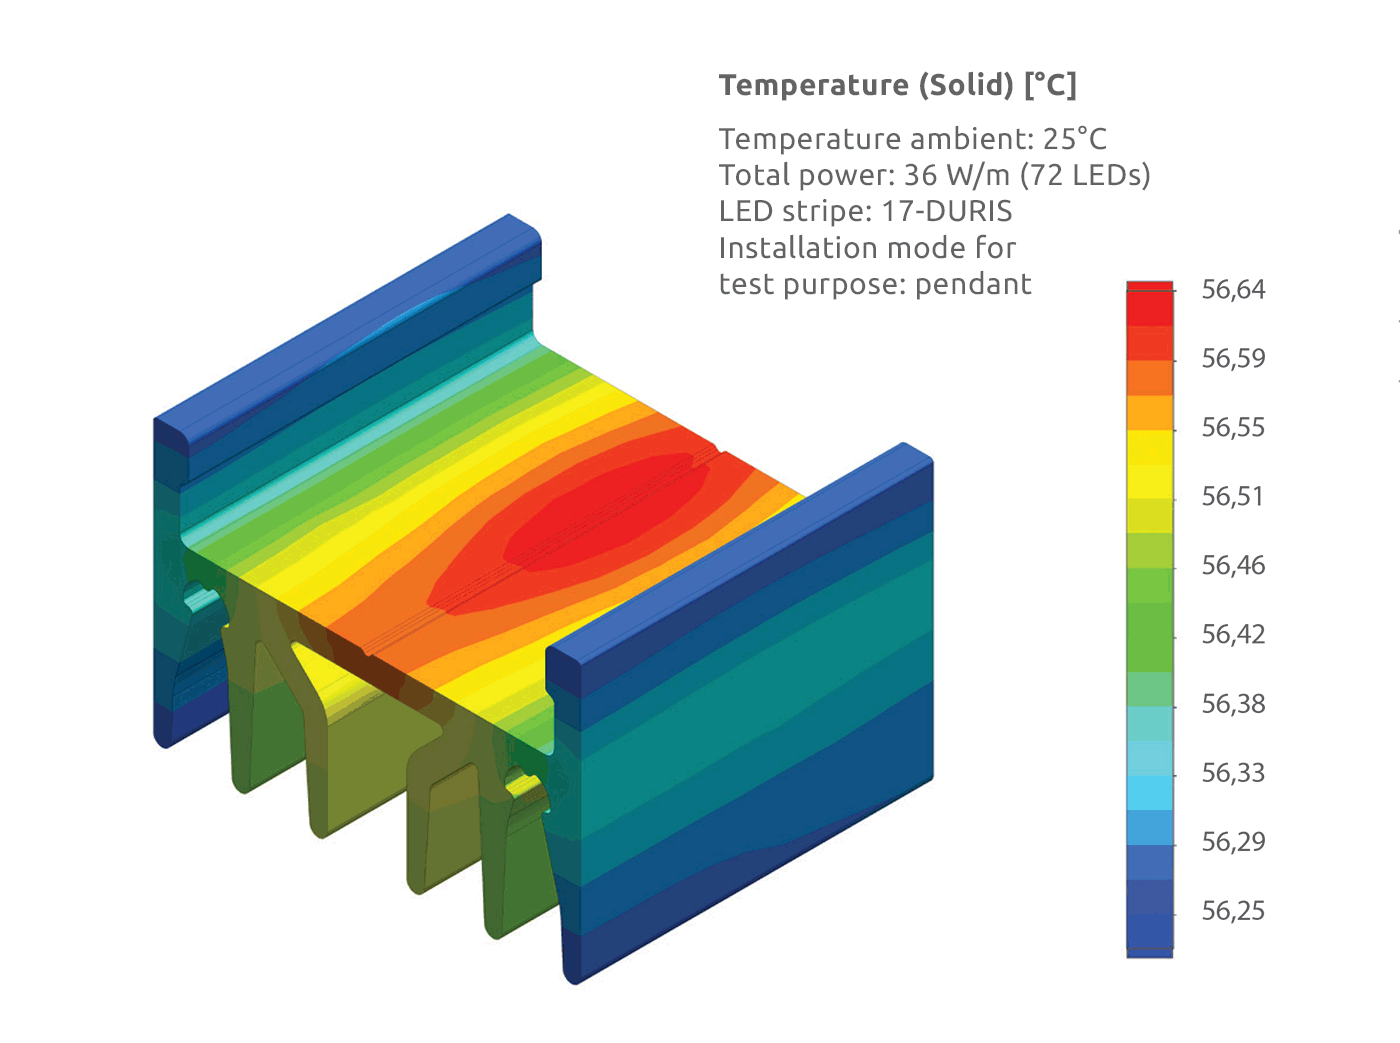 Thermal analyses